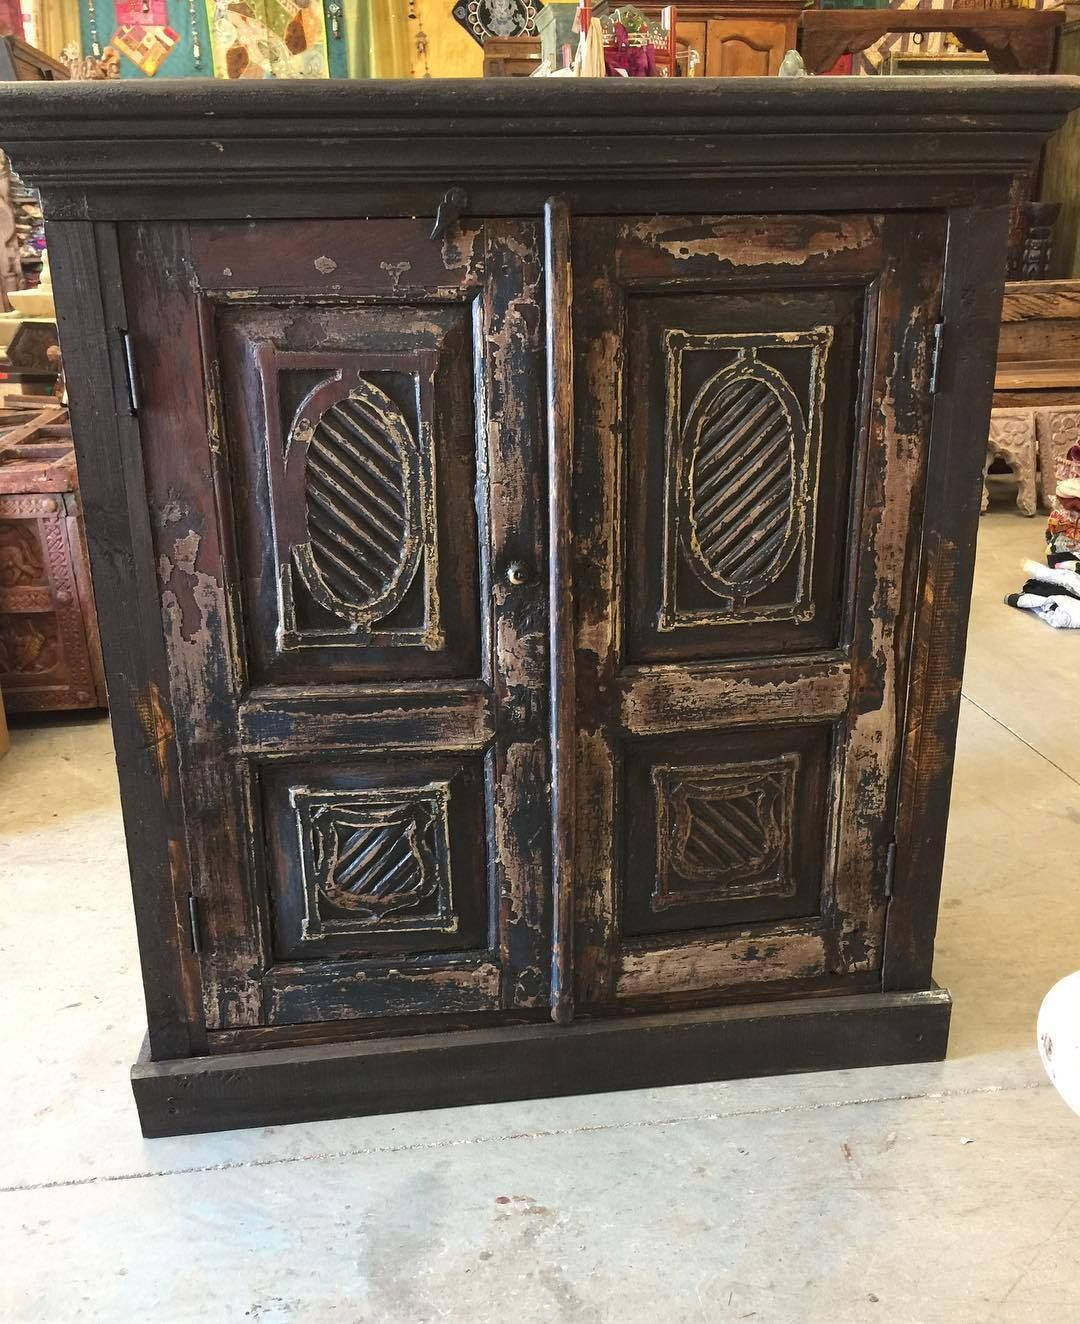 Marvelous Antique Sideboard Chest Furniture TV Console Cabinets Gothic Style Interior  | EBay Http://